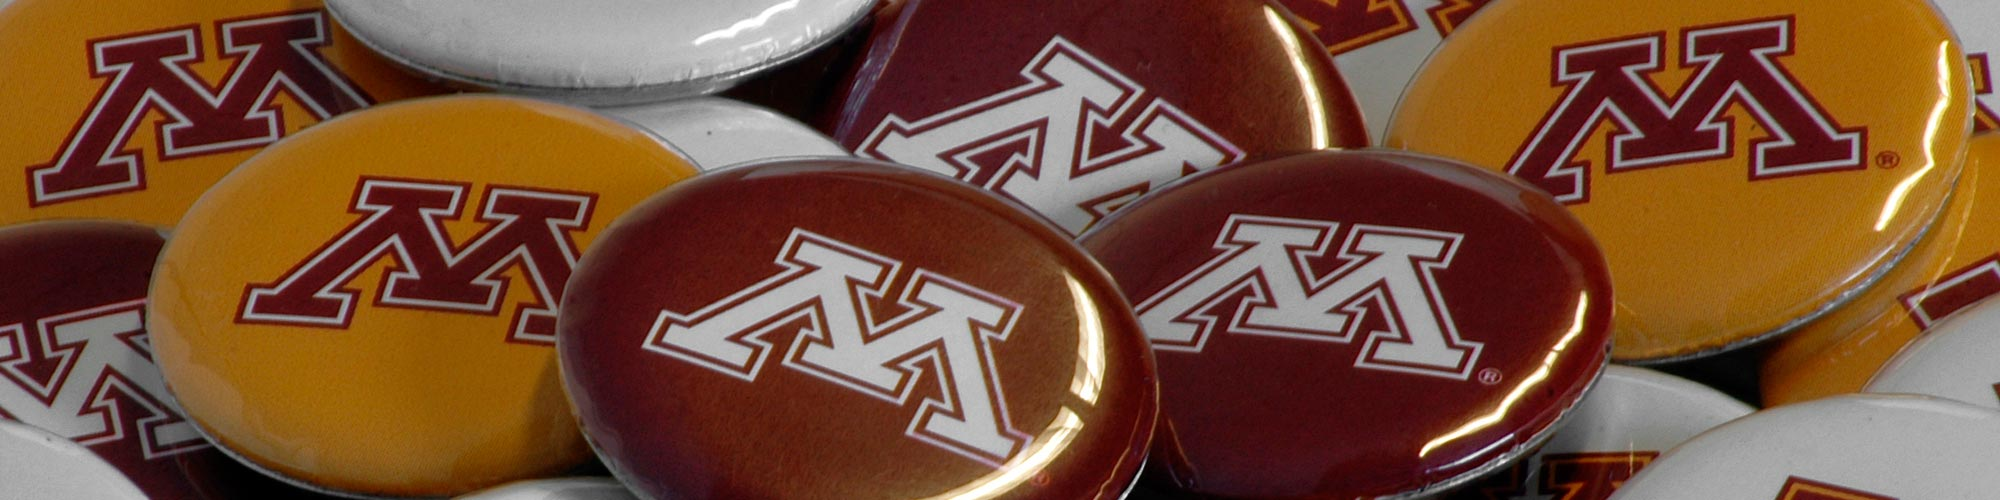 University of Minnesota buttons